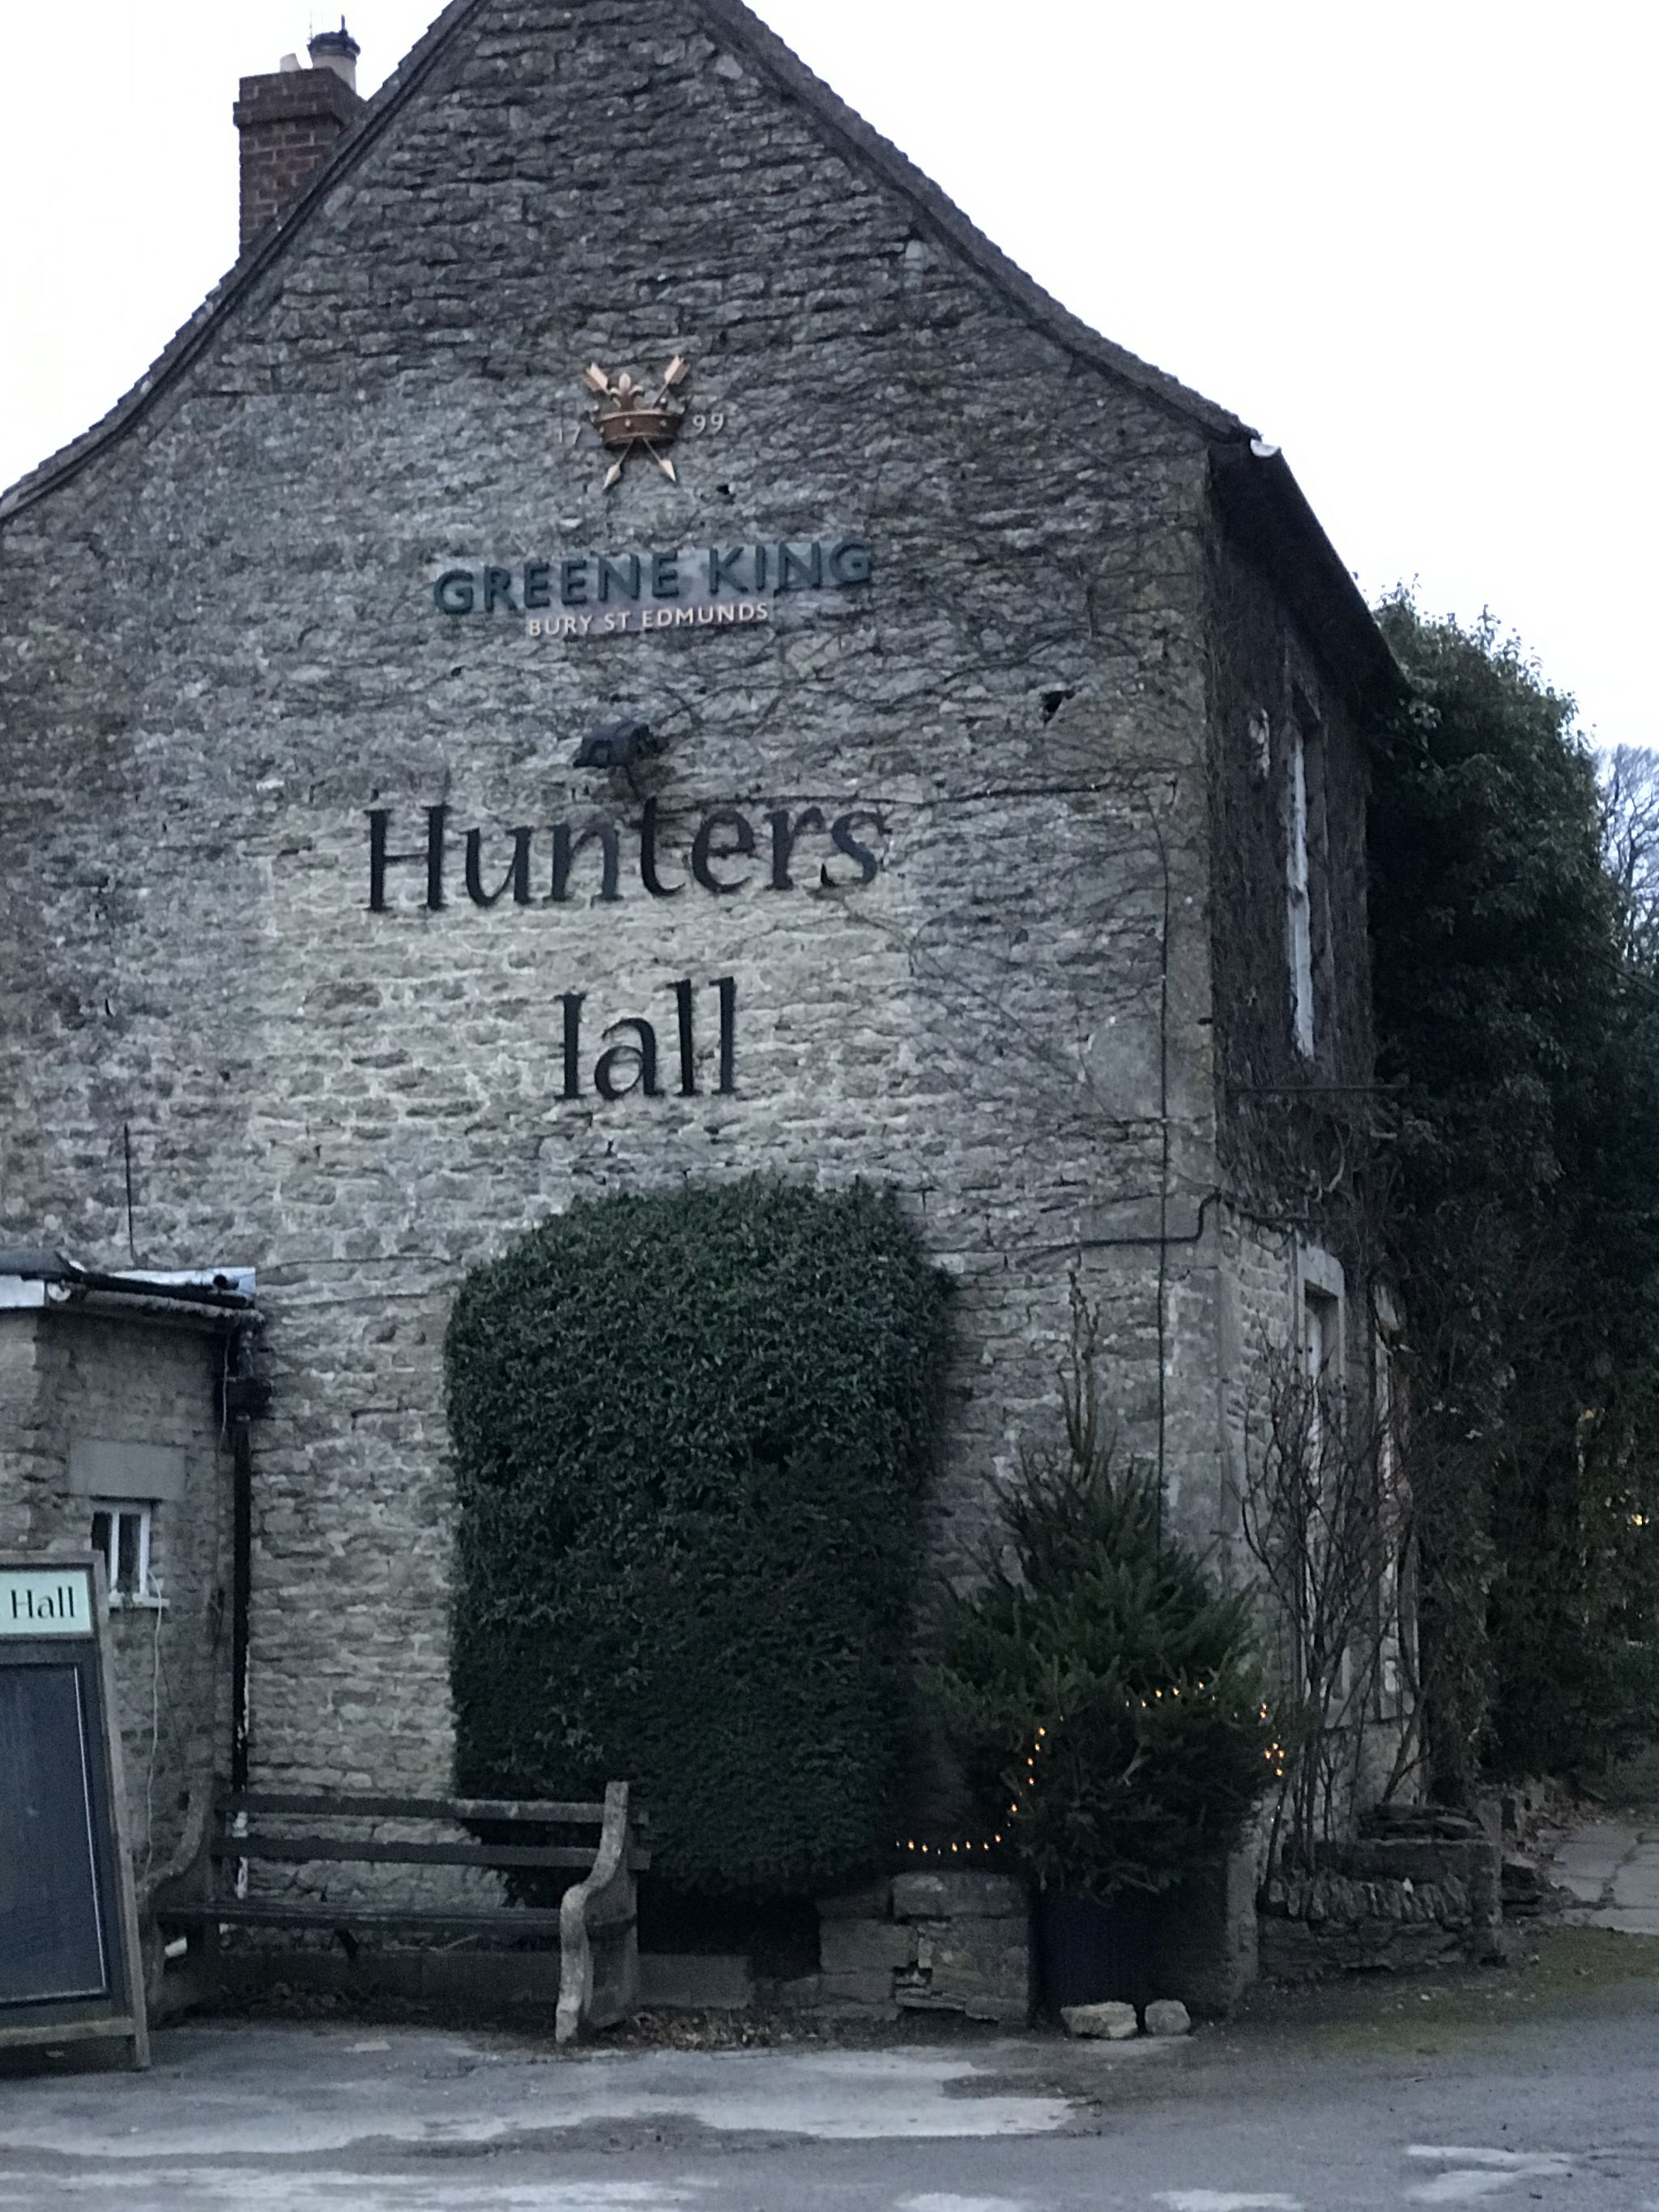 Hunters Hall Inn, Kingscote - exterior